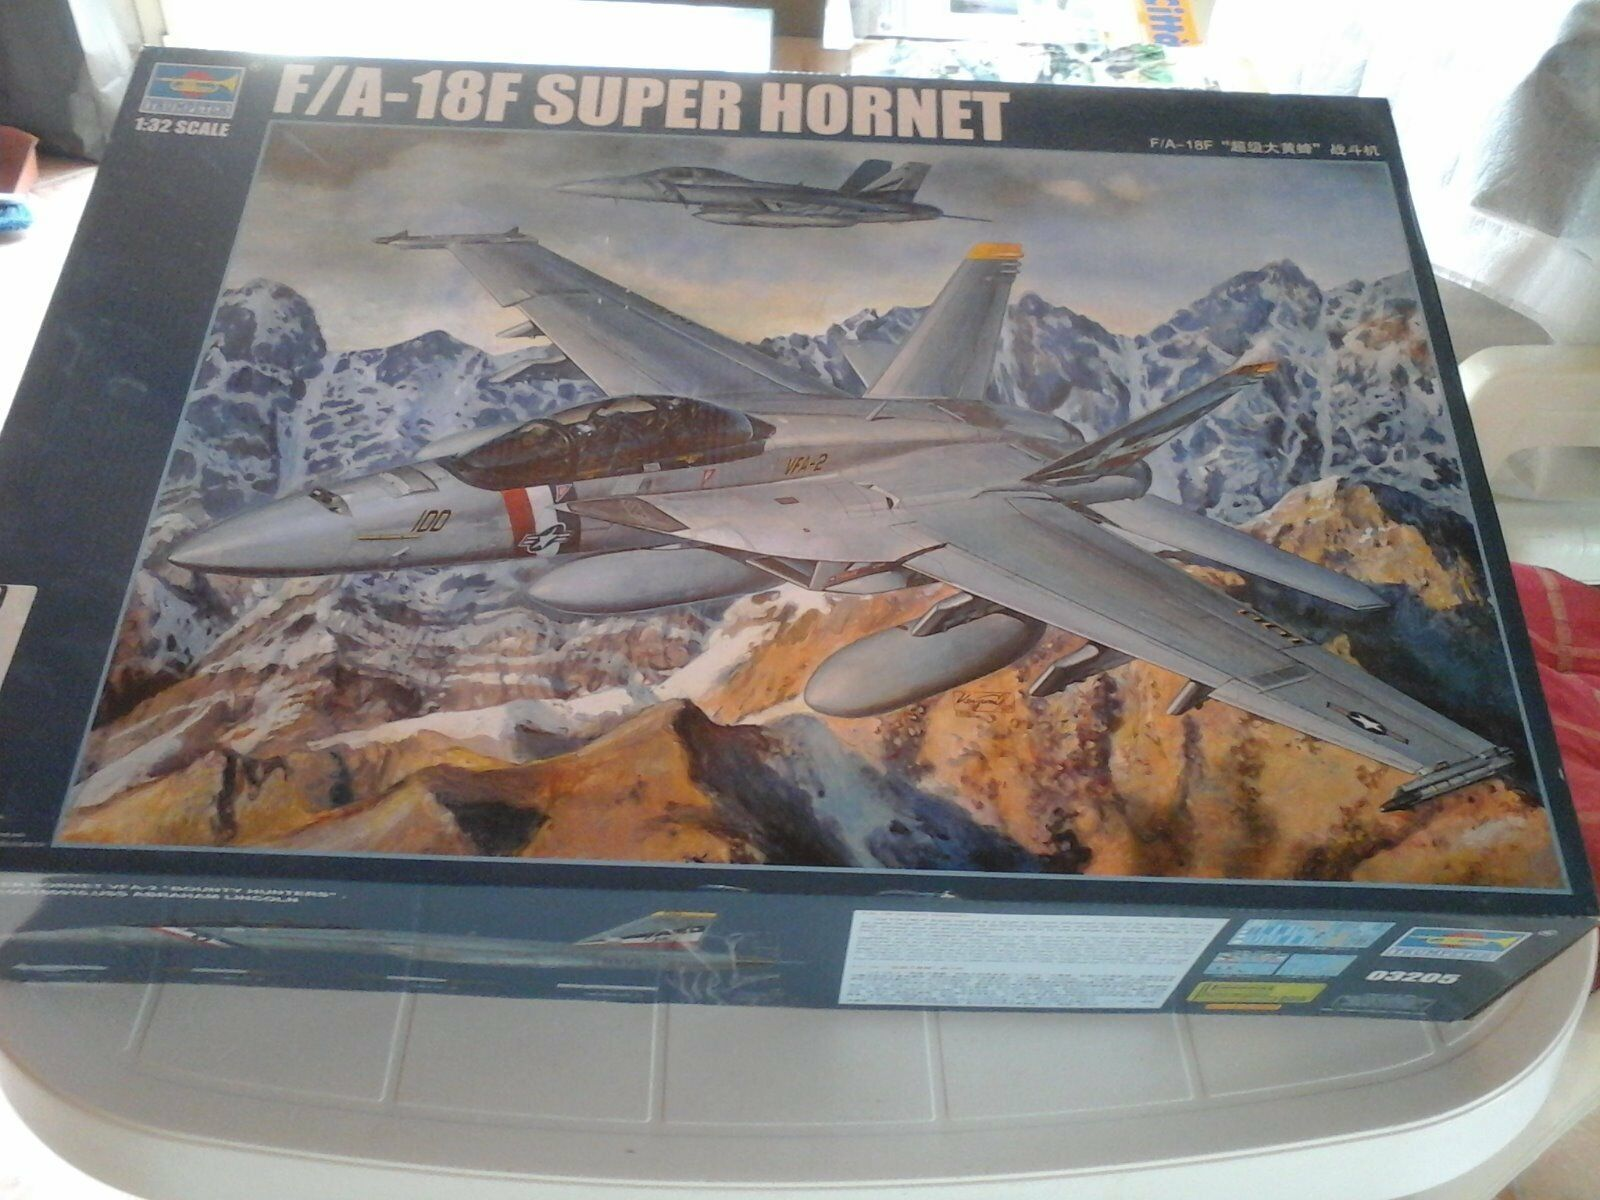 F/A-18F SUPER HORNET,1/32 SCALE,TRUMPETER MODEL+METAL +PHOTOETCHED+RUBBER WHEE